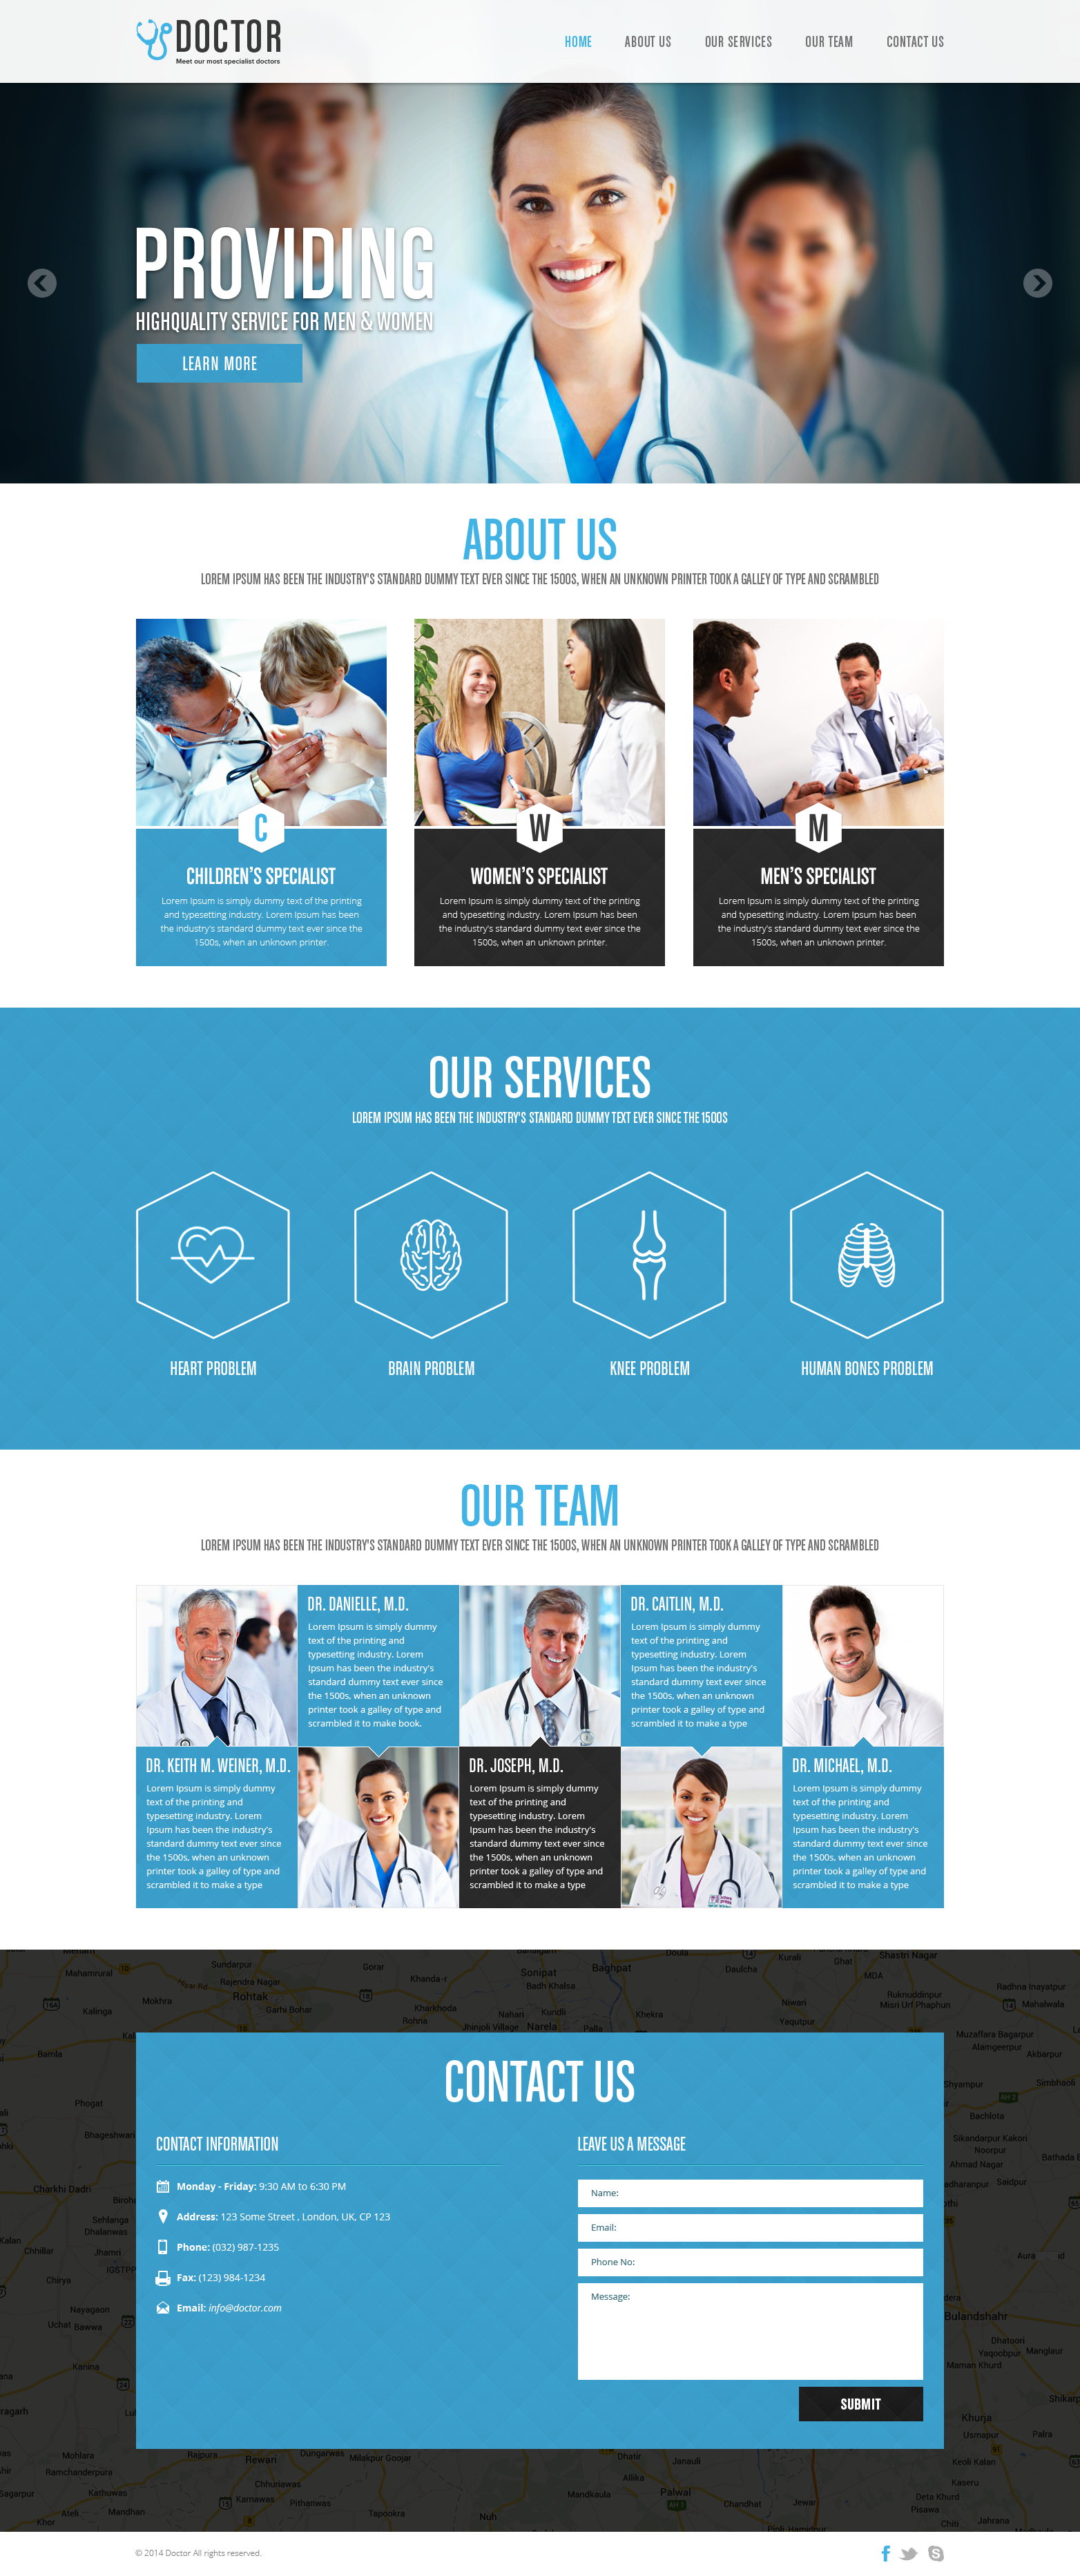 A Very Simple Free Psd Template For Medical Industry Suitable For Simple Websites And Can Be Used For Small Me Modele De Site Web Powerpoint Gratuit Site Web